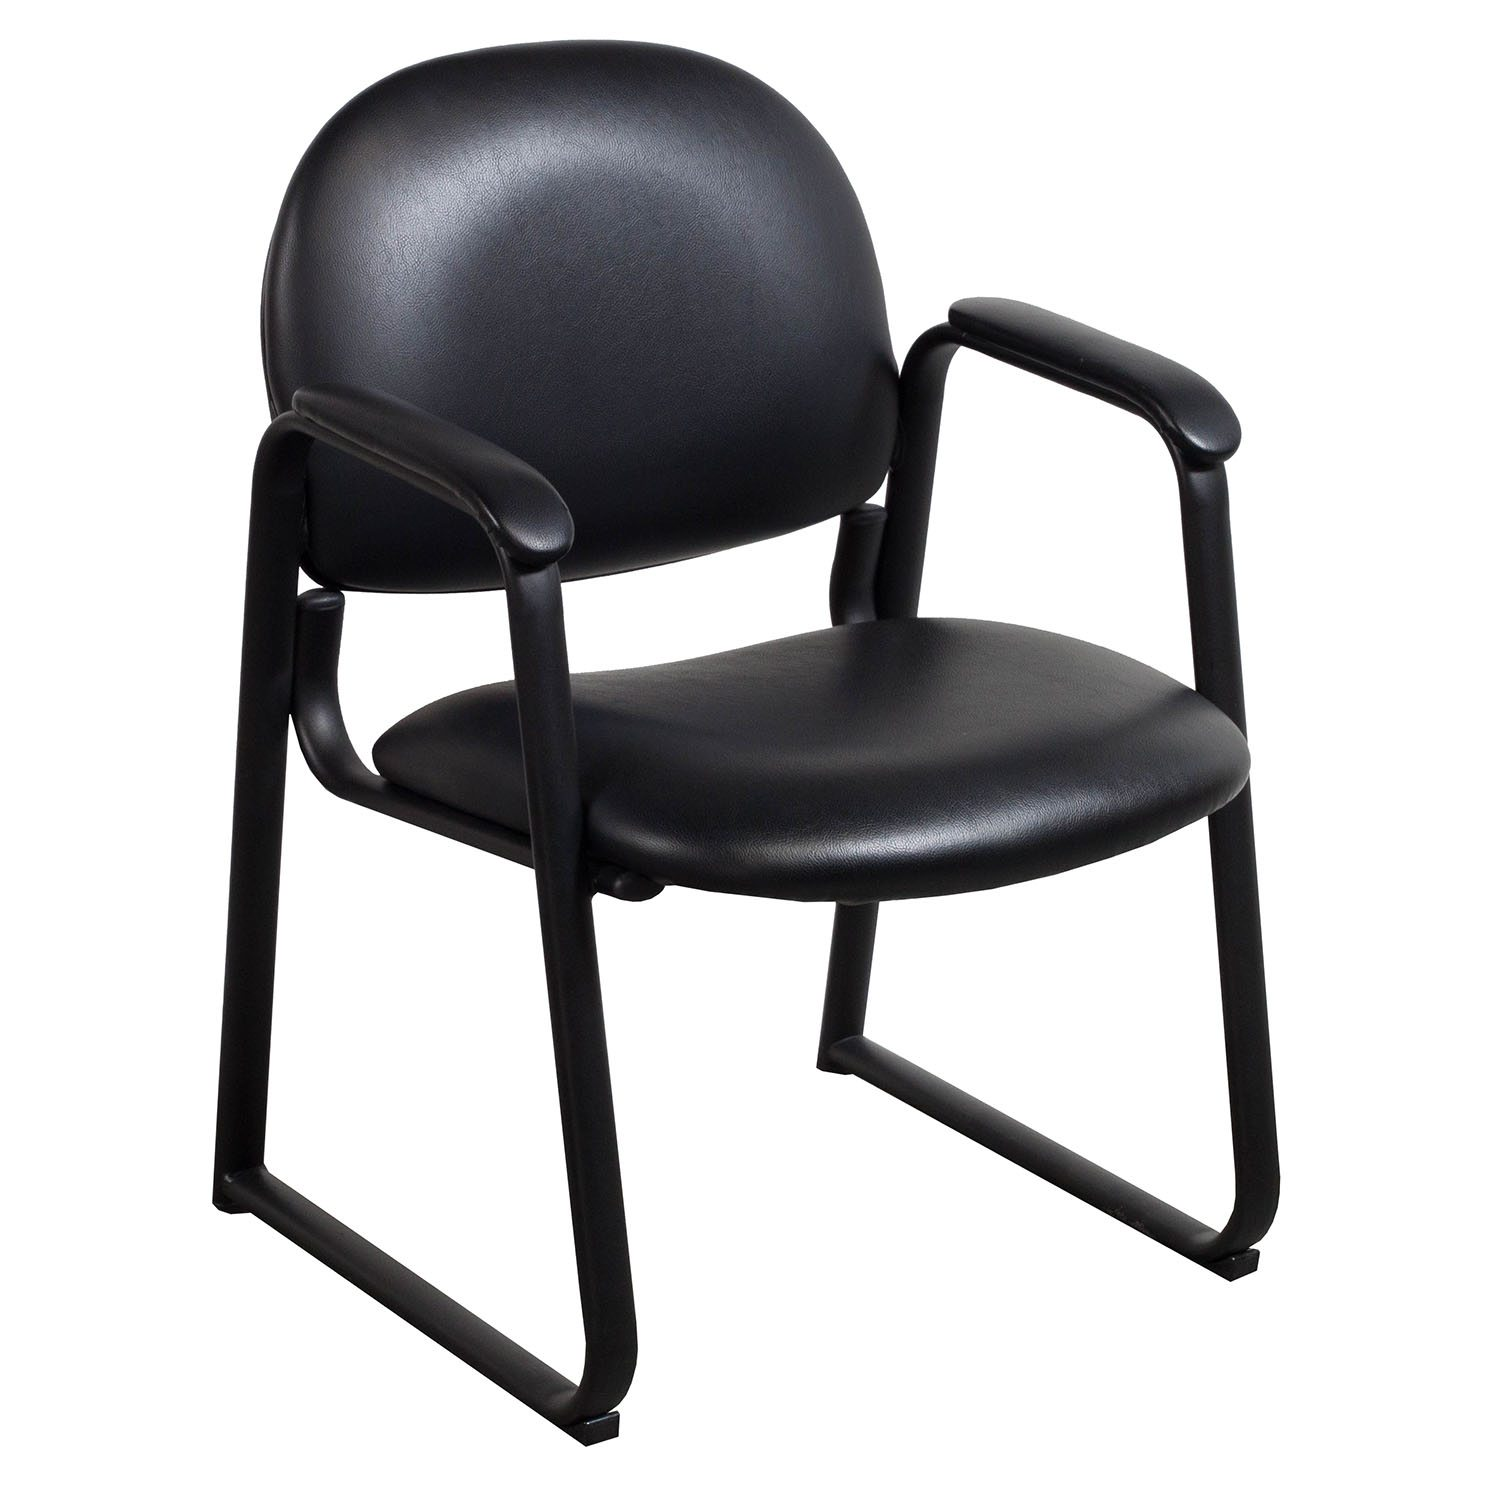 office side chairs chair yoga videos global used leather black national